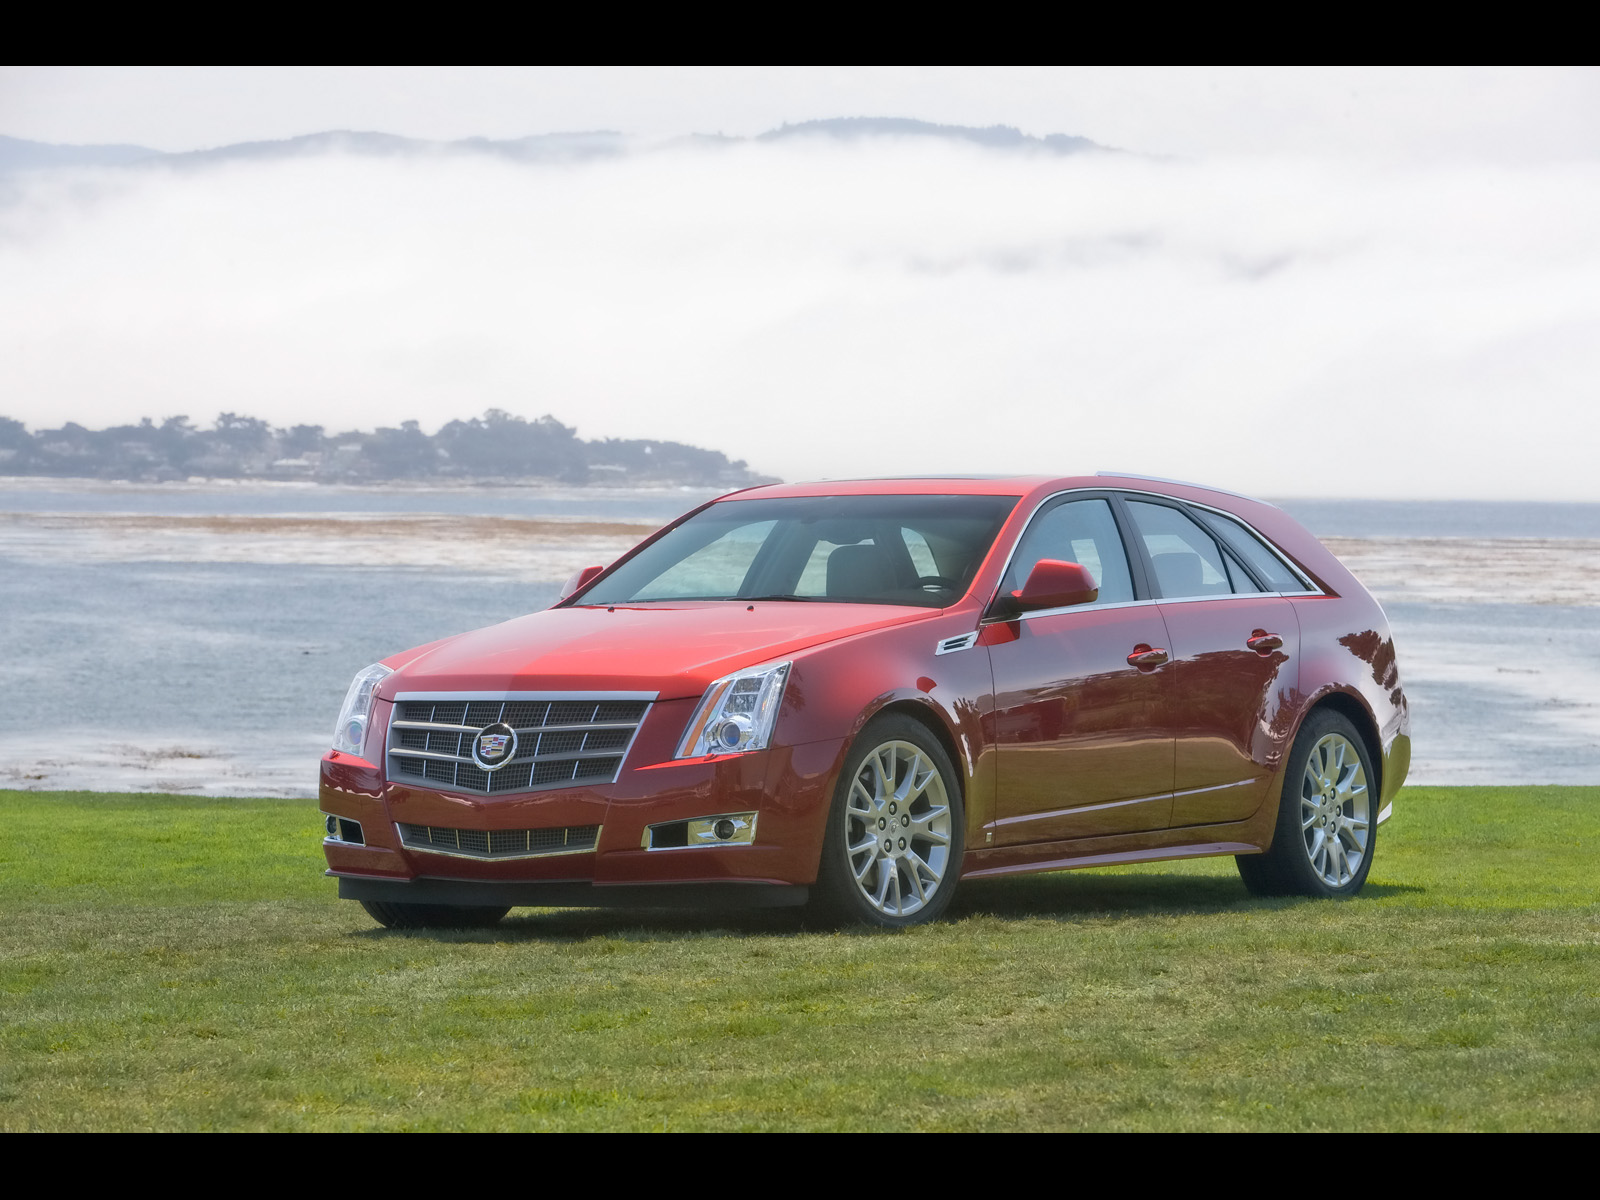 cars hd wallpapers 2010 cadillac cts sport wagon. Black Bedroom Furniture Sets. Home Design Ideas